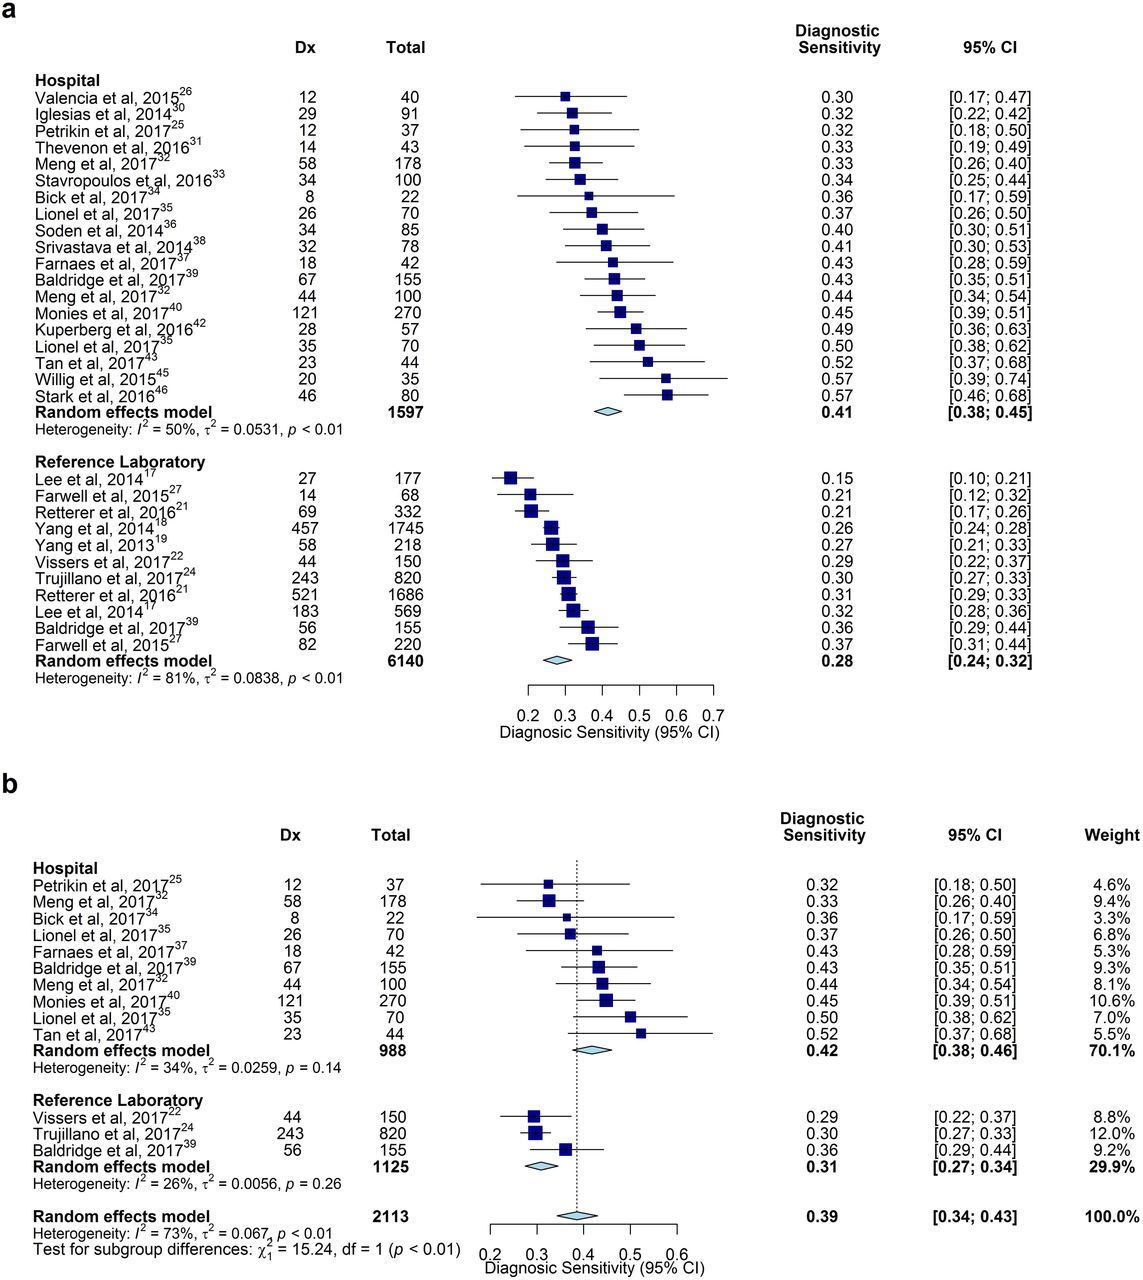 A meta-analysis of the diagnostic sensitivity and clinical utility